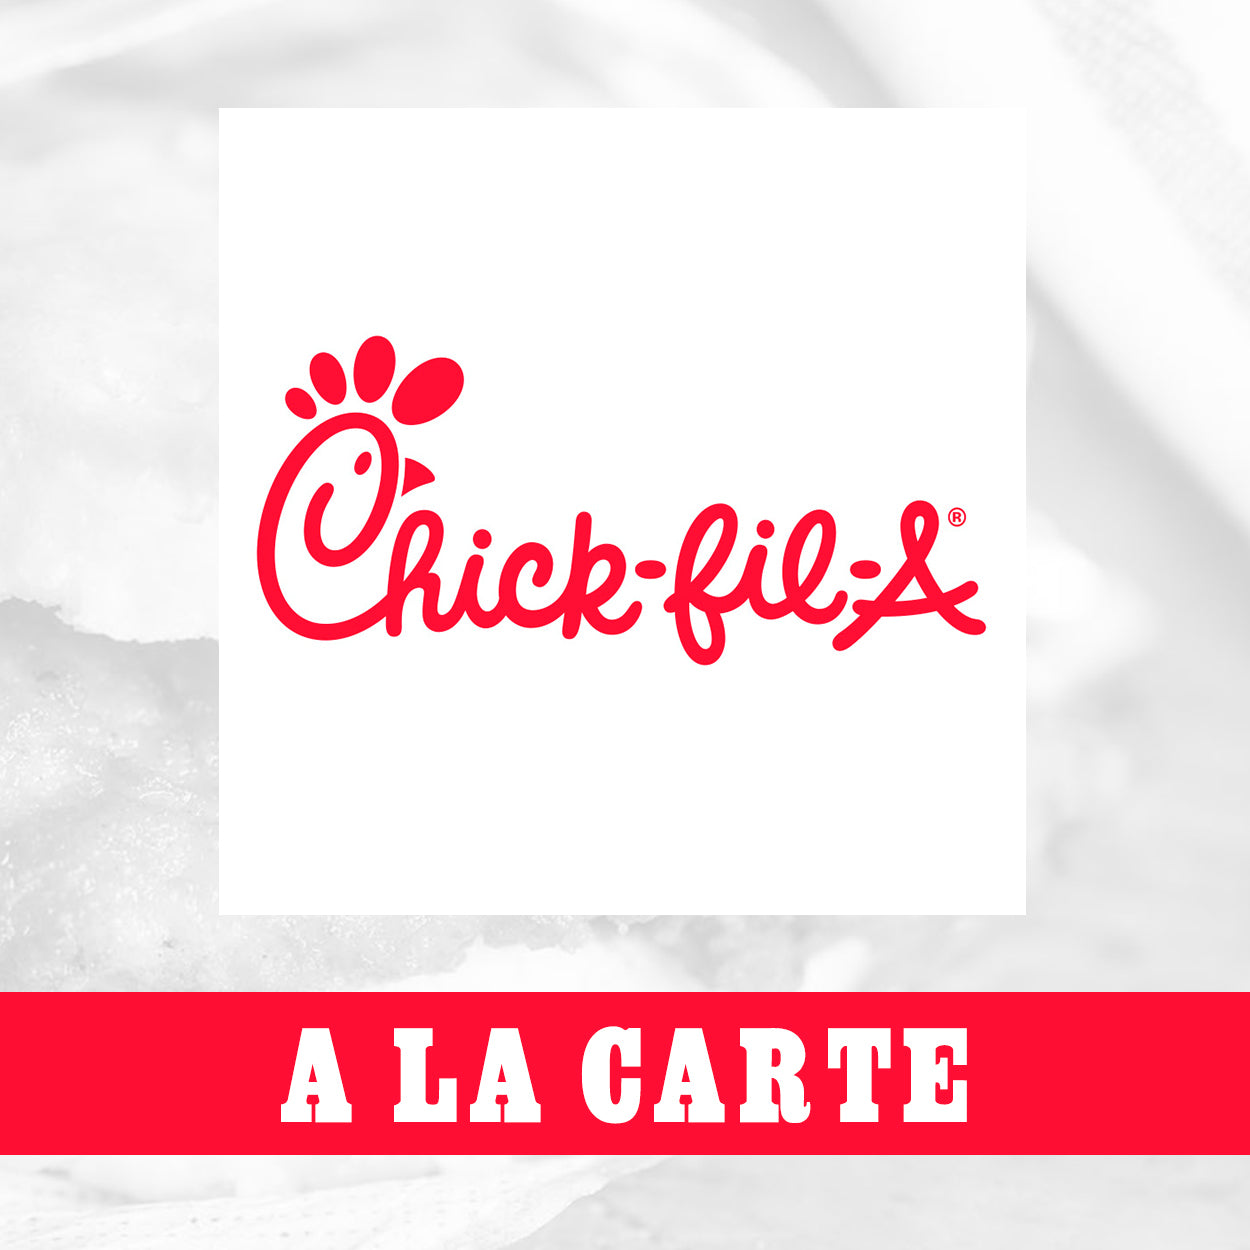 Chick-fil-A a La Carte Choices